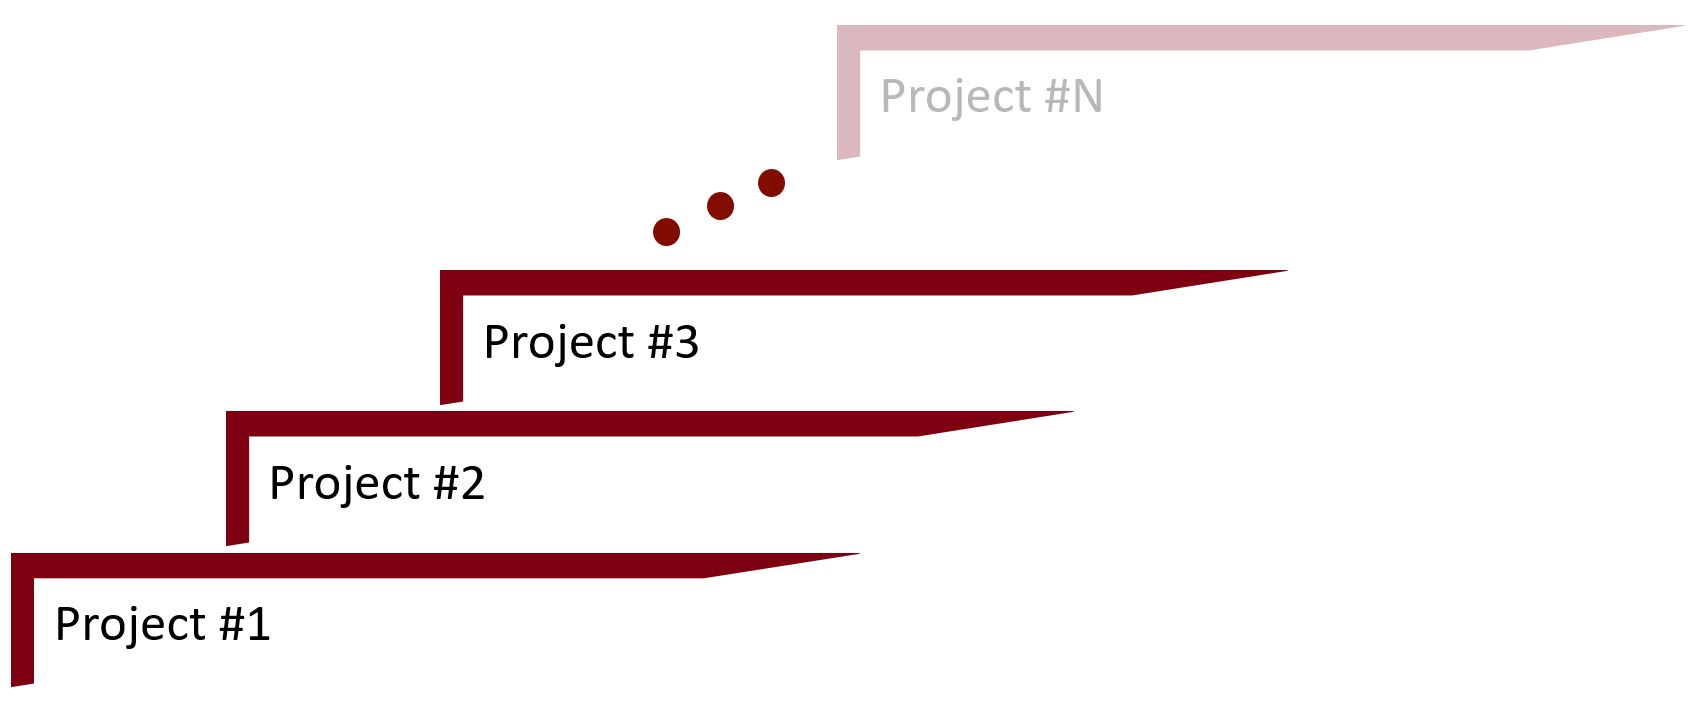 Projects in I4.0